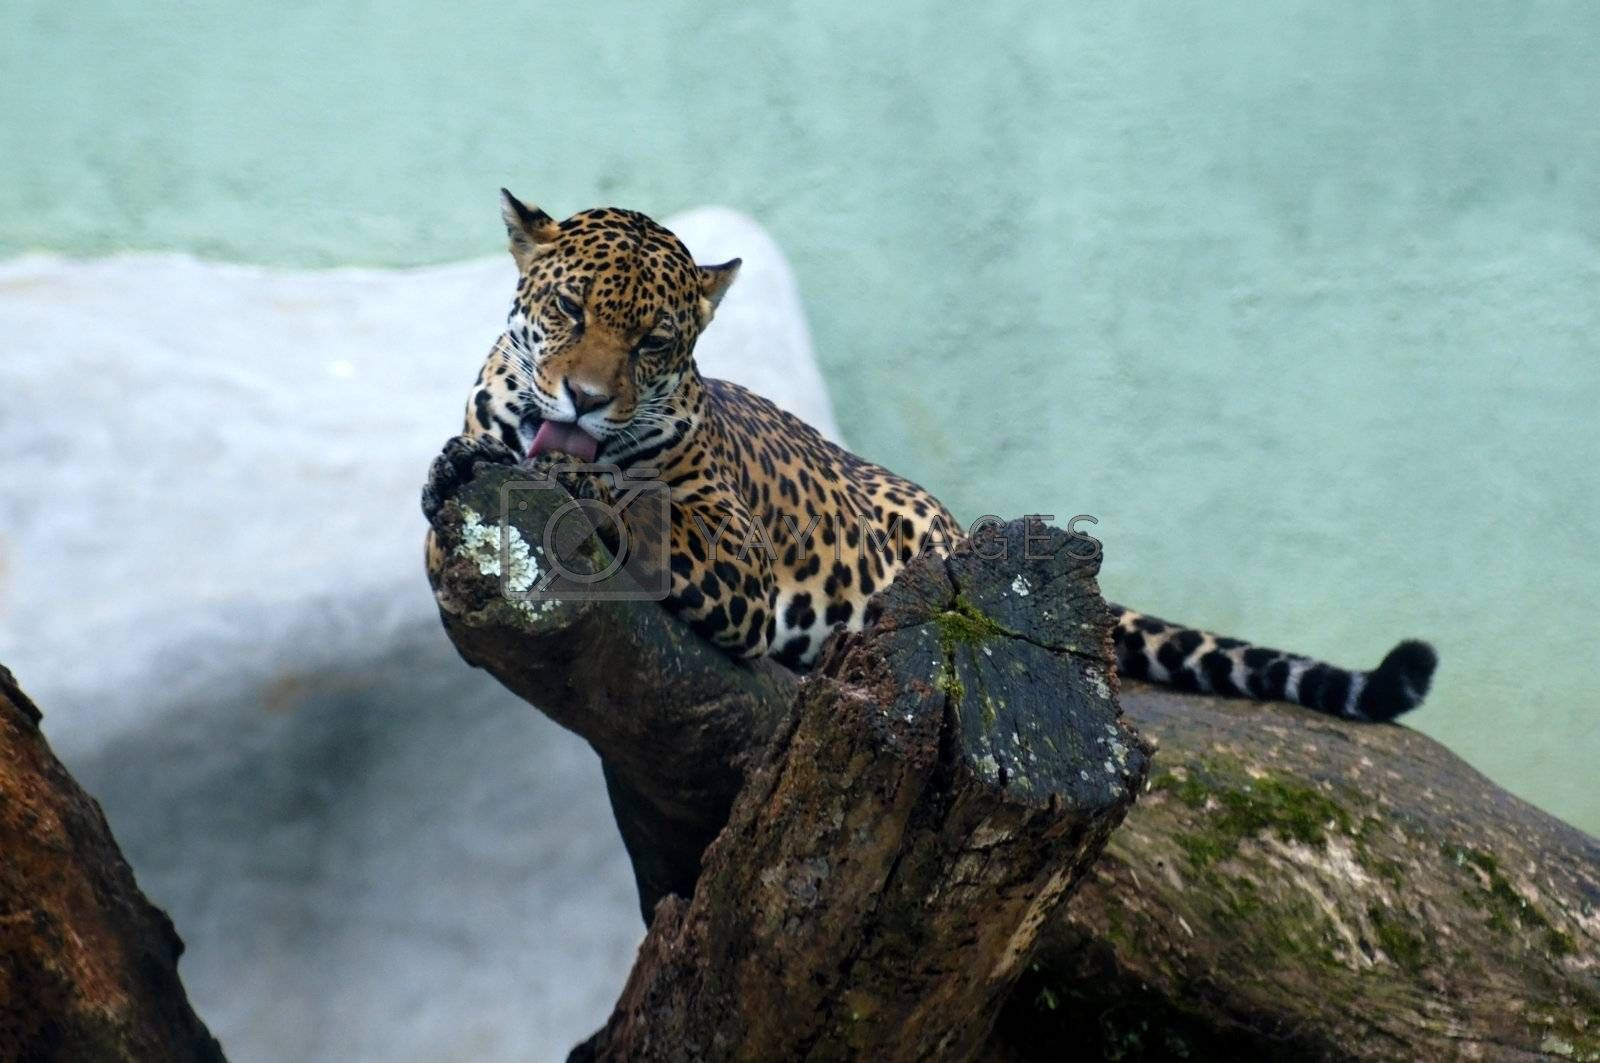 Americas feline largest, her body is robust and muscular, their size varies between 1120 - 1.850mm